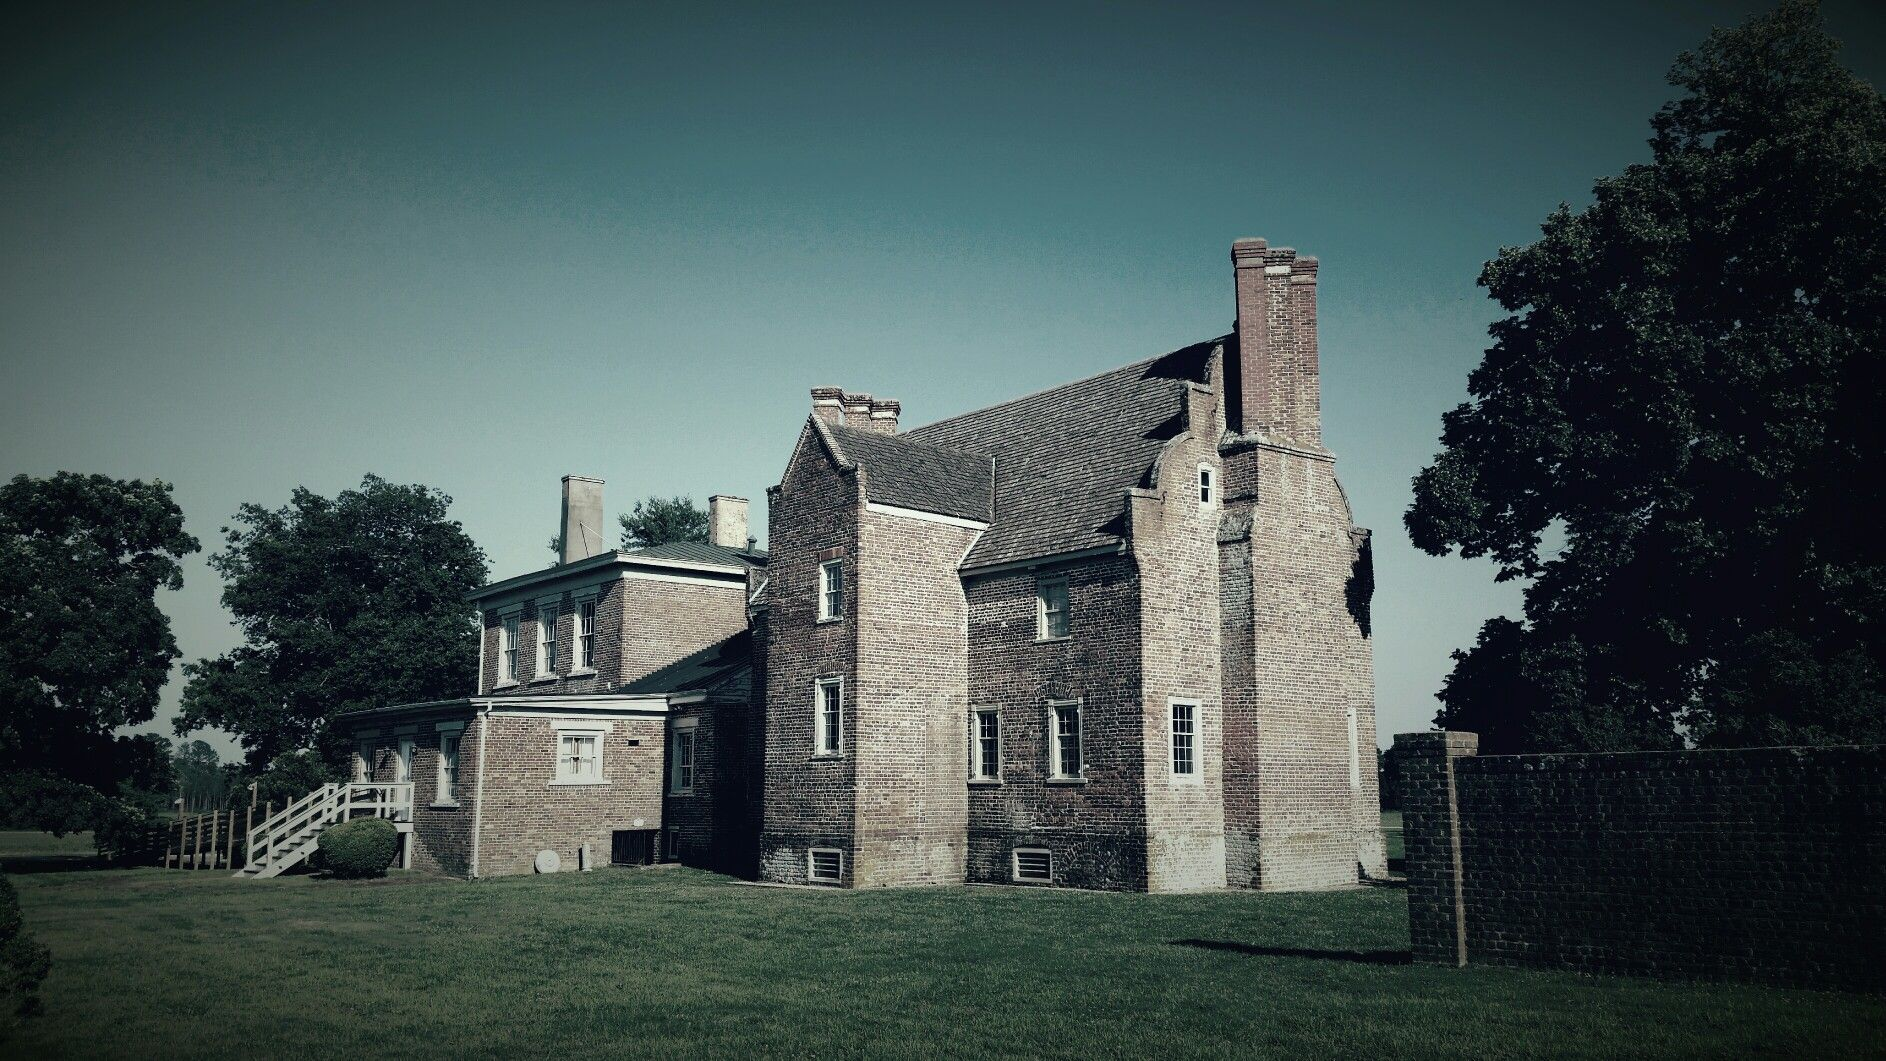 bacons castle oldest brick structure in north america surry county va june